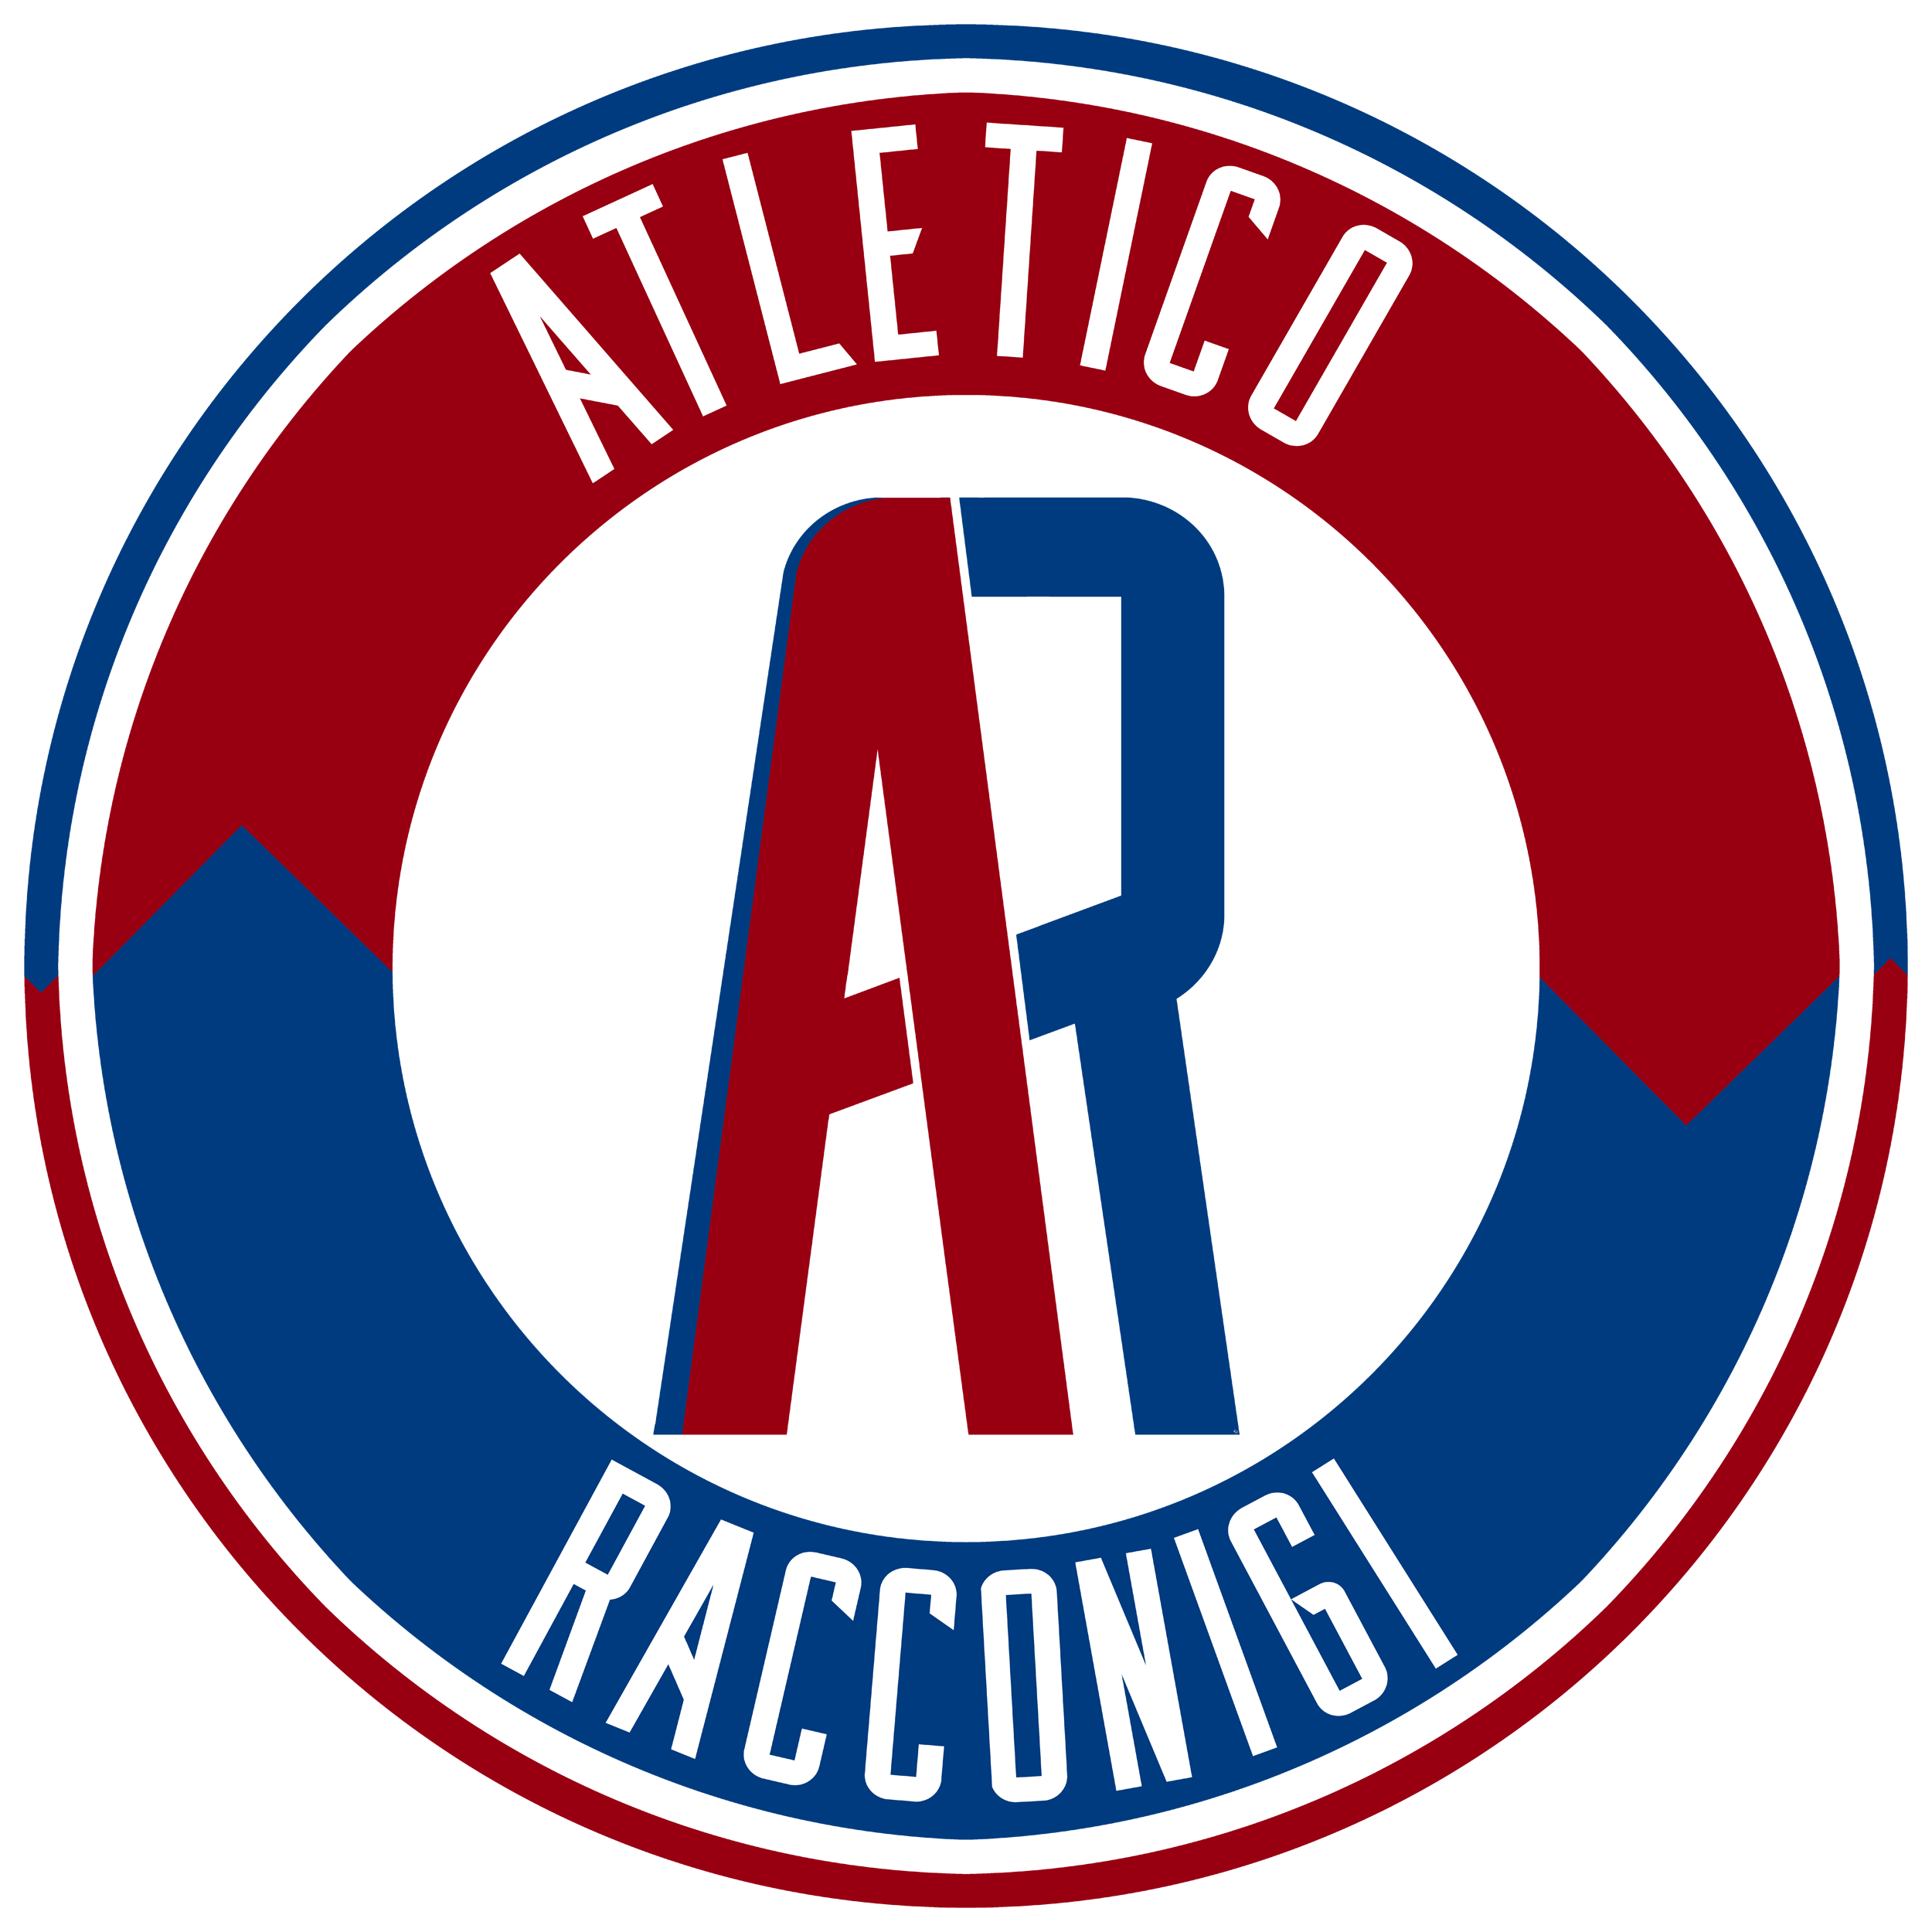 AtleticoRacconigi.it